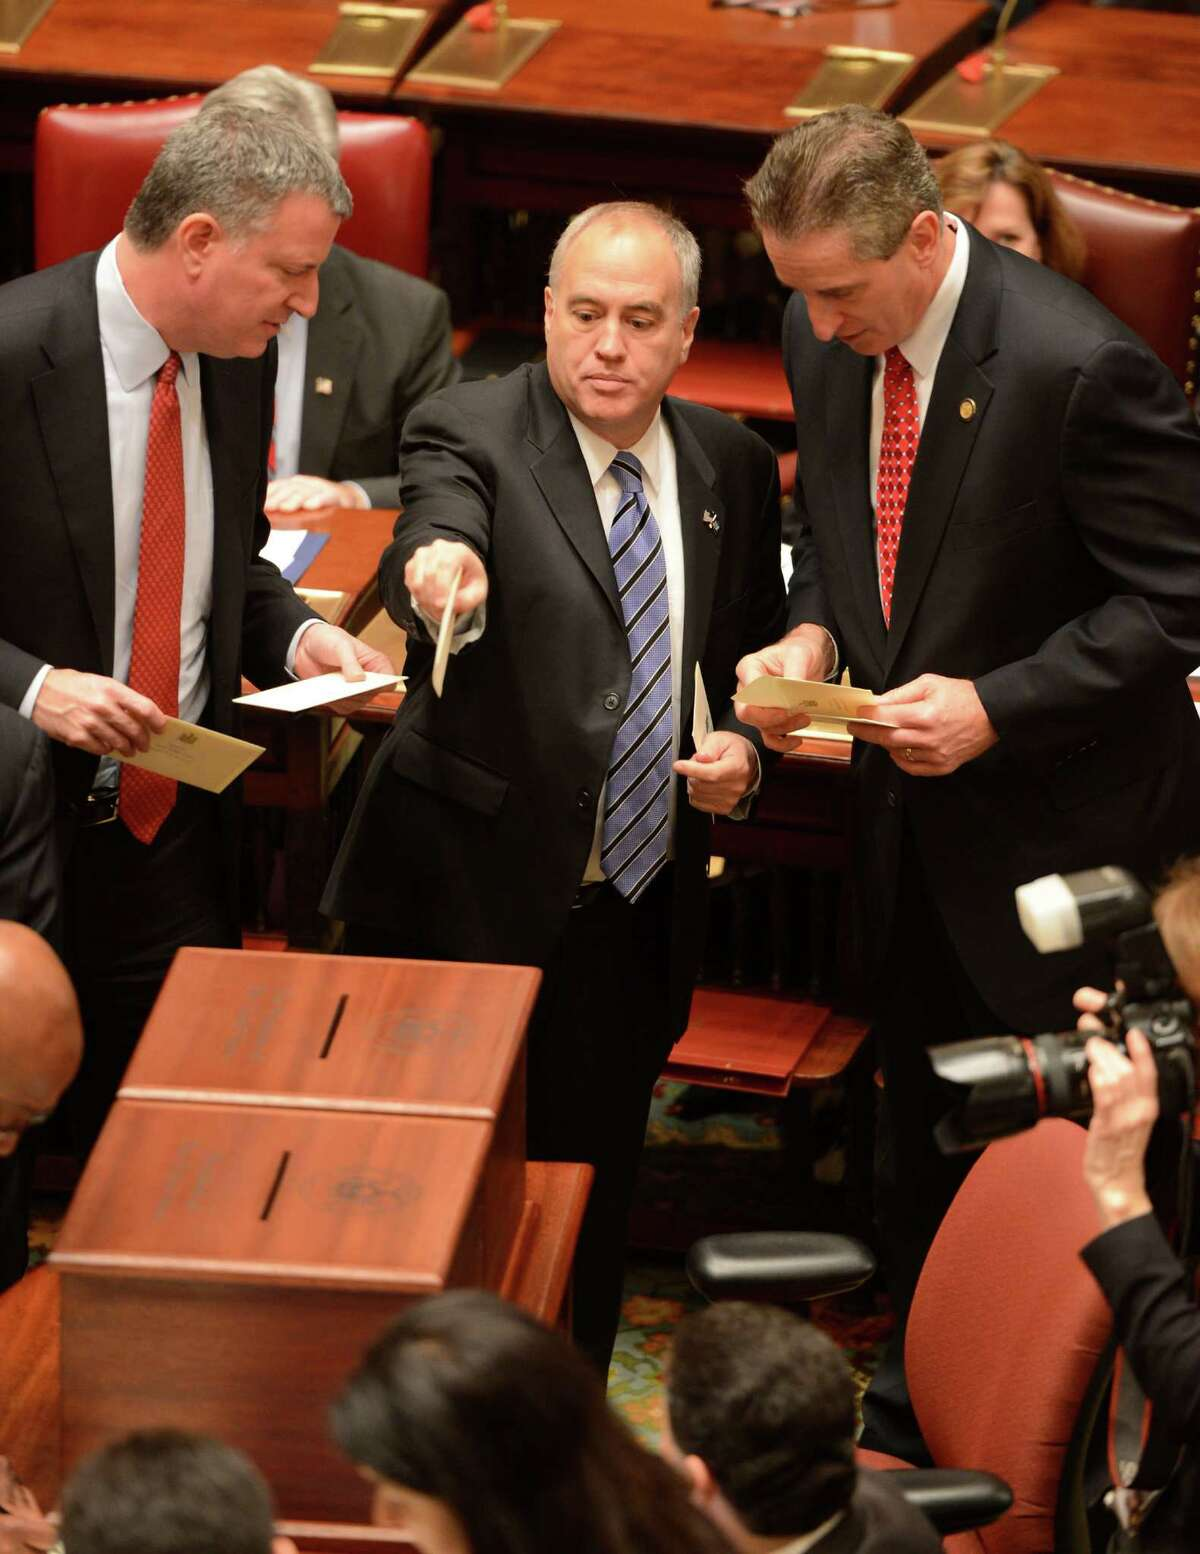 Bill DeBlasio, left Thomas DiNapoli, center and Lt. Governor Bob Duffy, right all members of the New York State Electoral College cast their ballot during the 57th meeting of the electoral college which took place in the Senate Chamber of the State Capitol on Dec 17, 2012, in Albany, N.Y. (Skip Dickstein/Times Union archive)